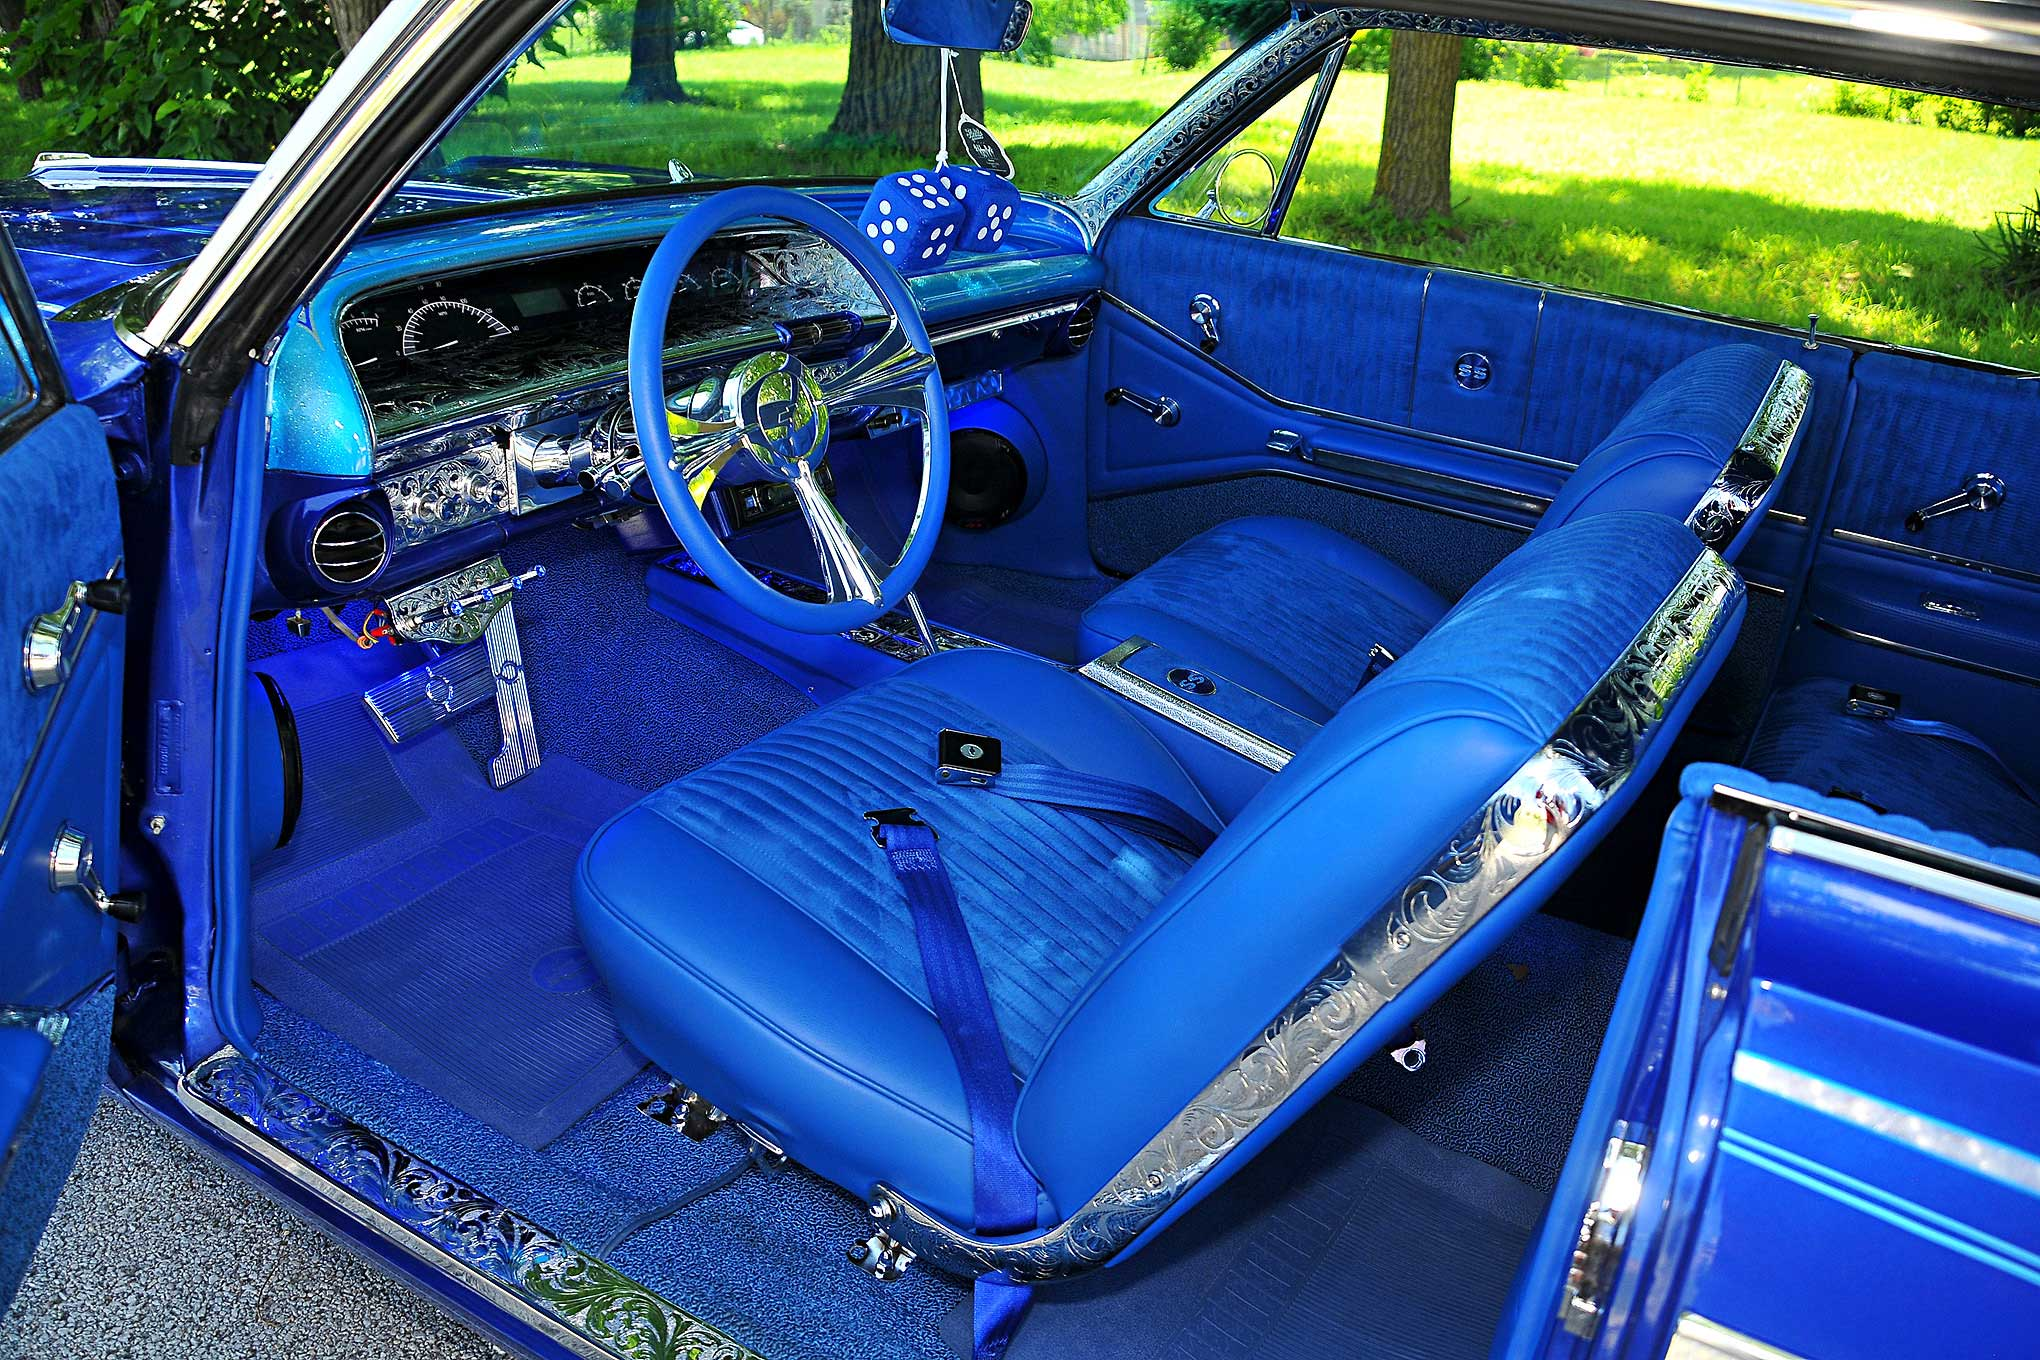 Swell 1964 Chevrolet Impala Blue Upholstery Interior Lowrider Gmtry Best Dining Table And Chair Ideas Images Gmtryco